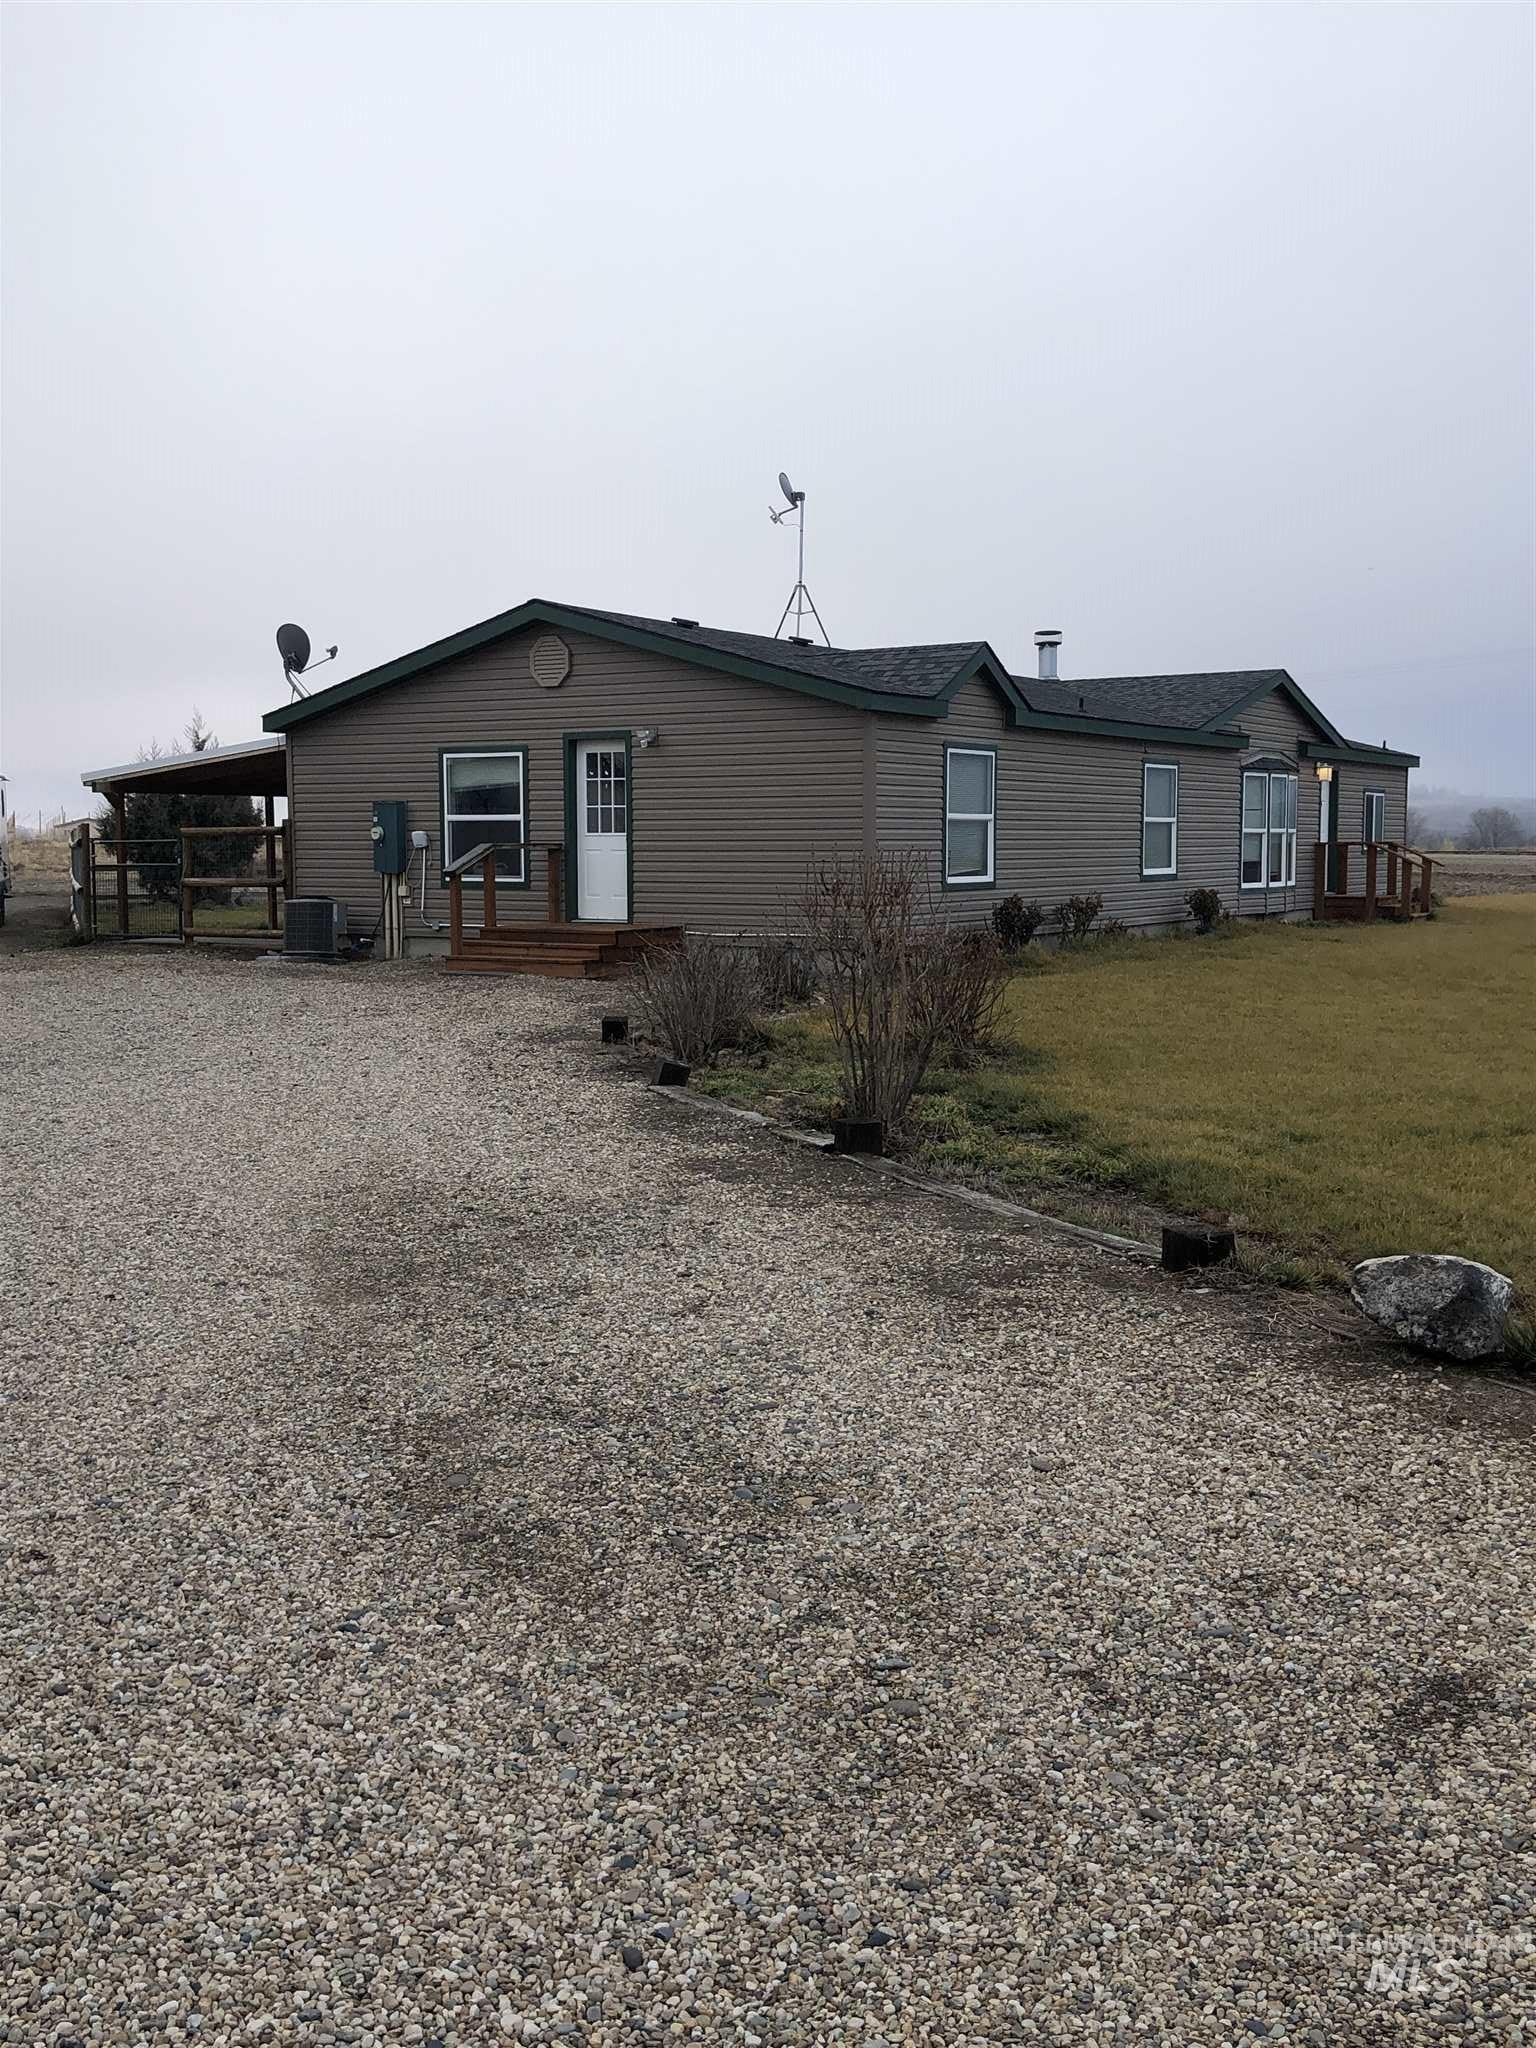 26024 Chips Lane, Parma, Idaho 83660, 3 Bedrooms, 2 Bathrooms, Residential For Sale, Price $360,000, 98791049